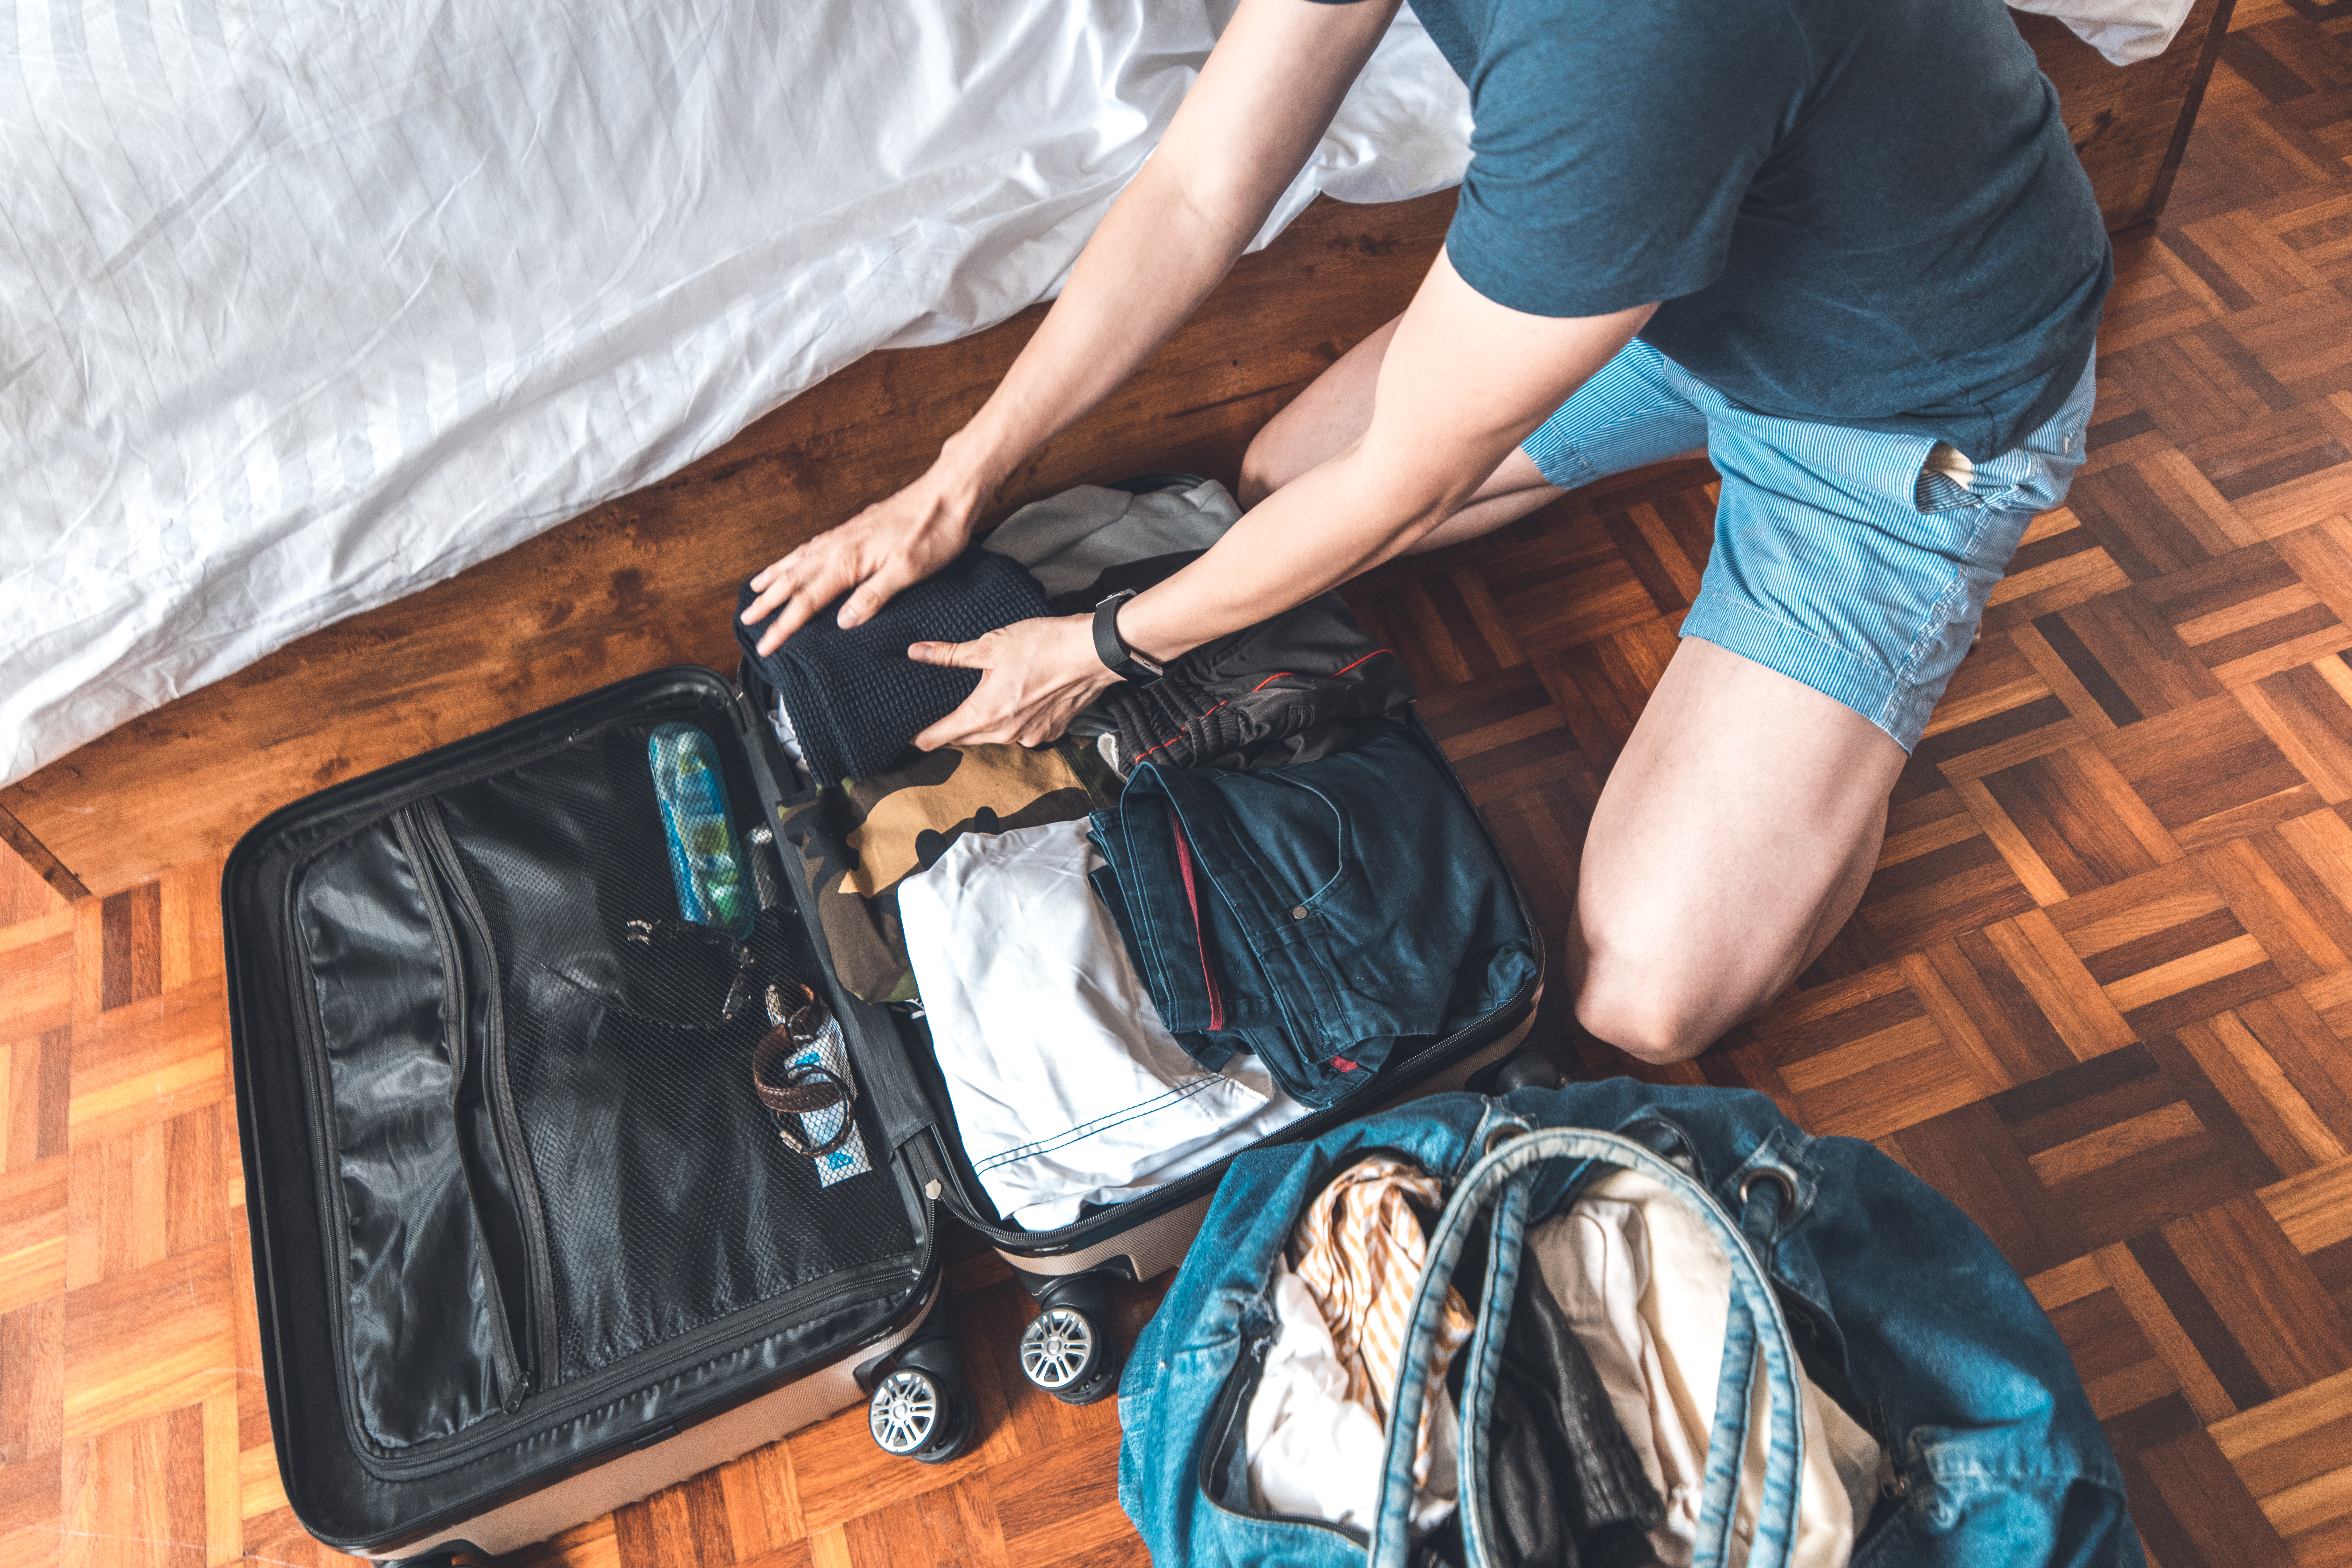 The psychology behind over- (and under-) packing